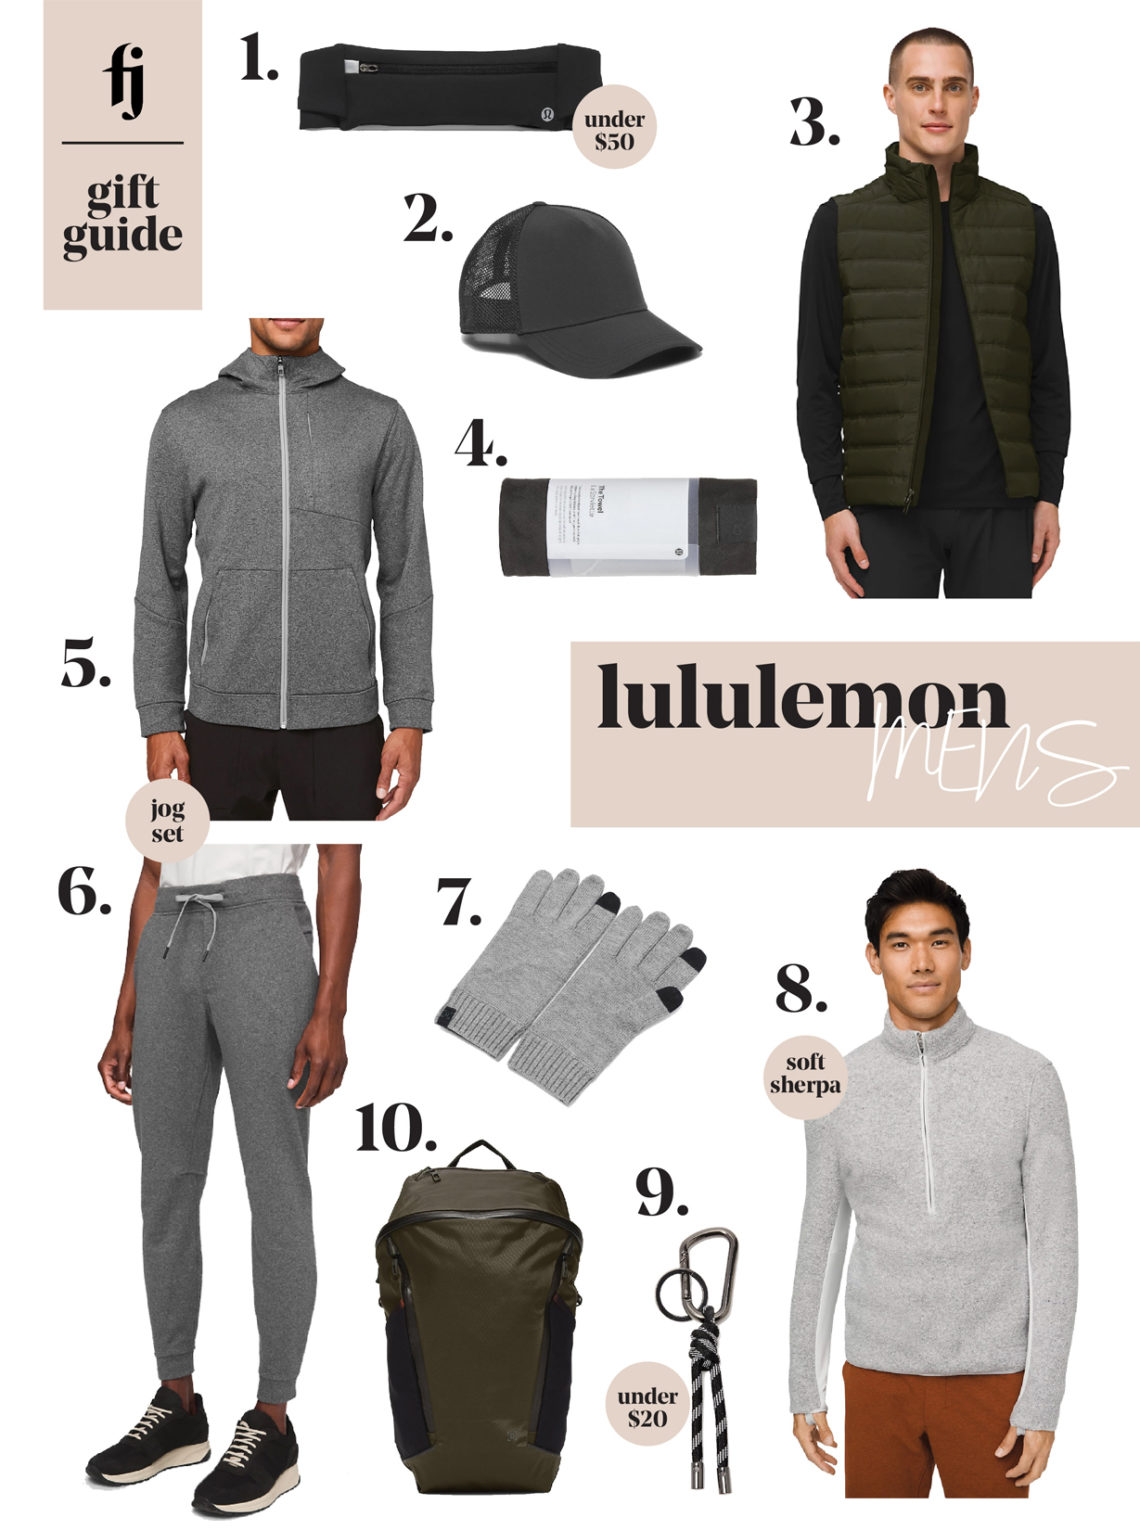 lululemon mens gift guide